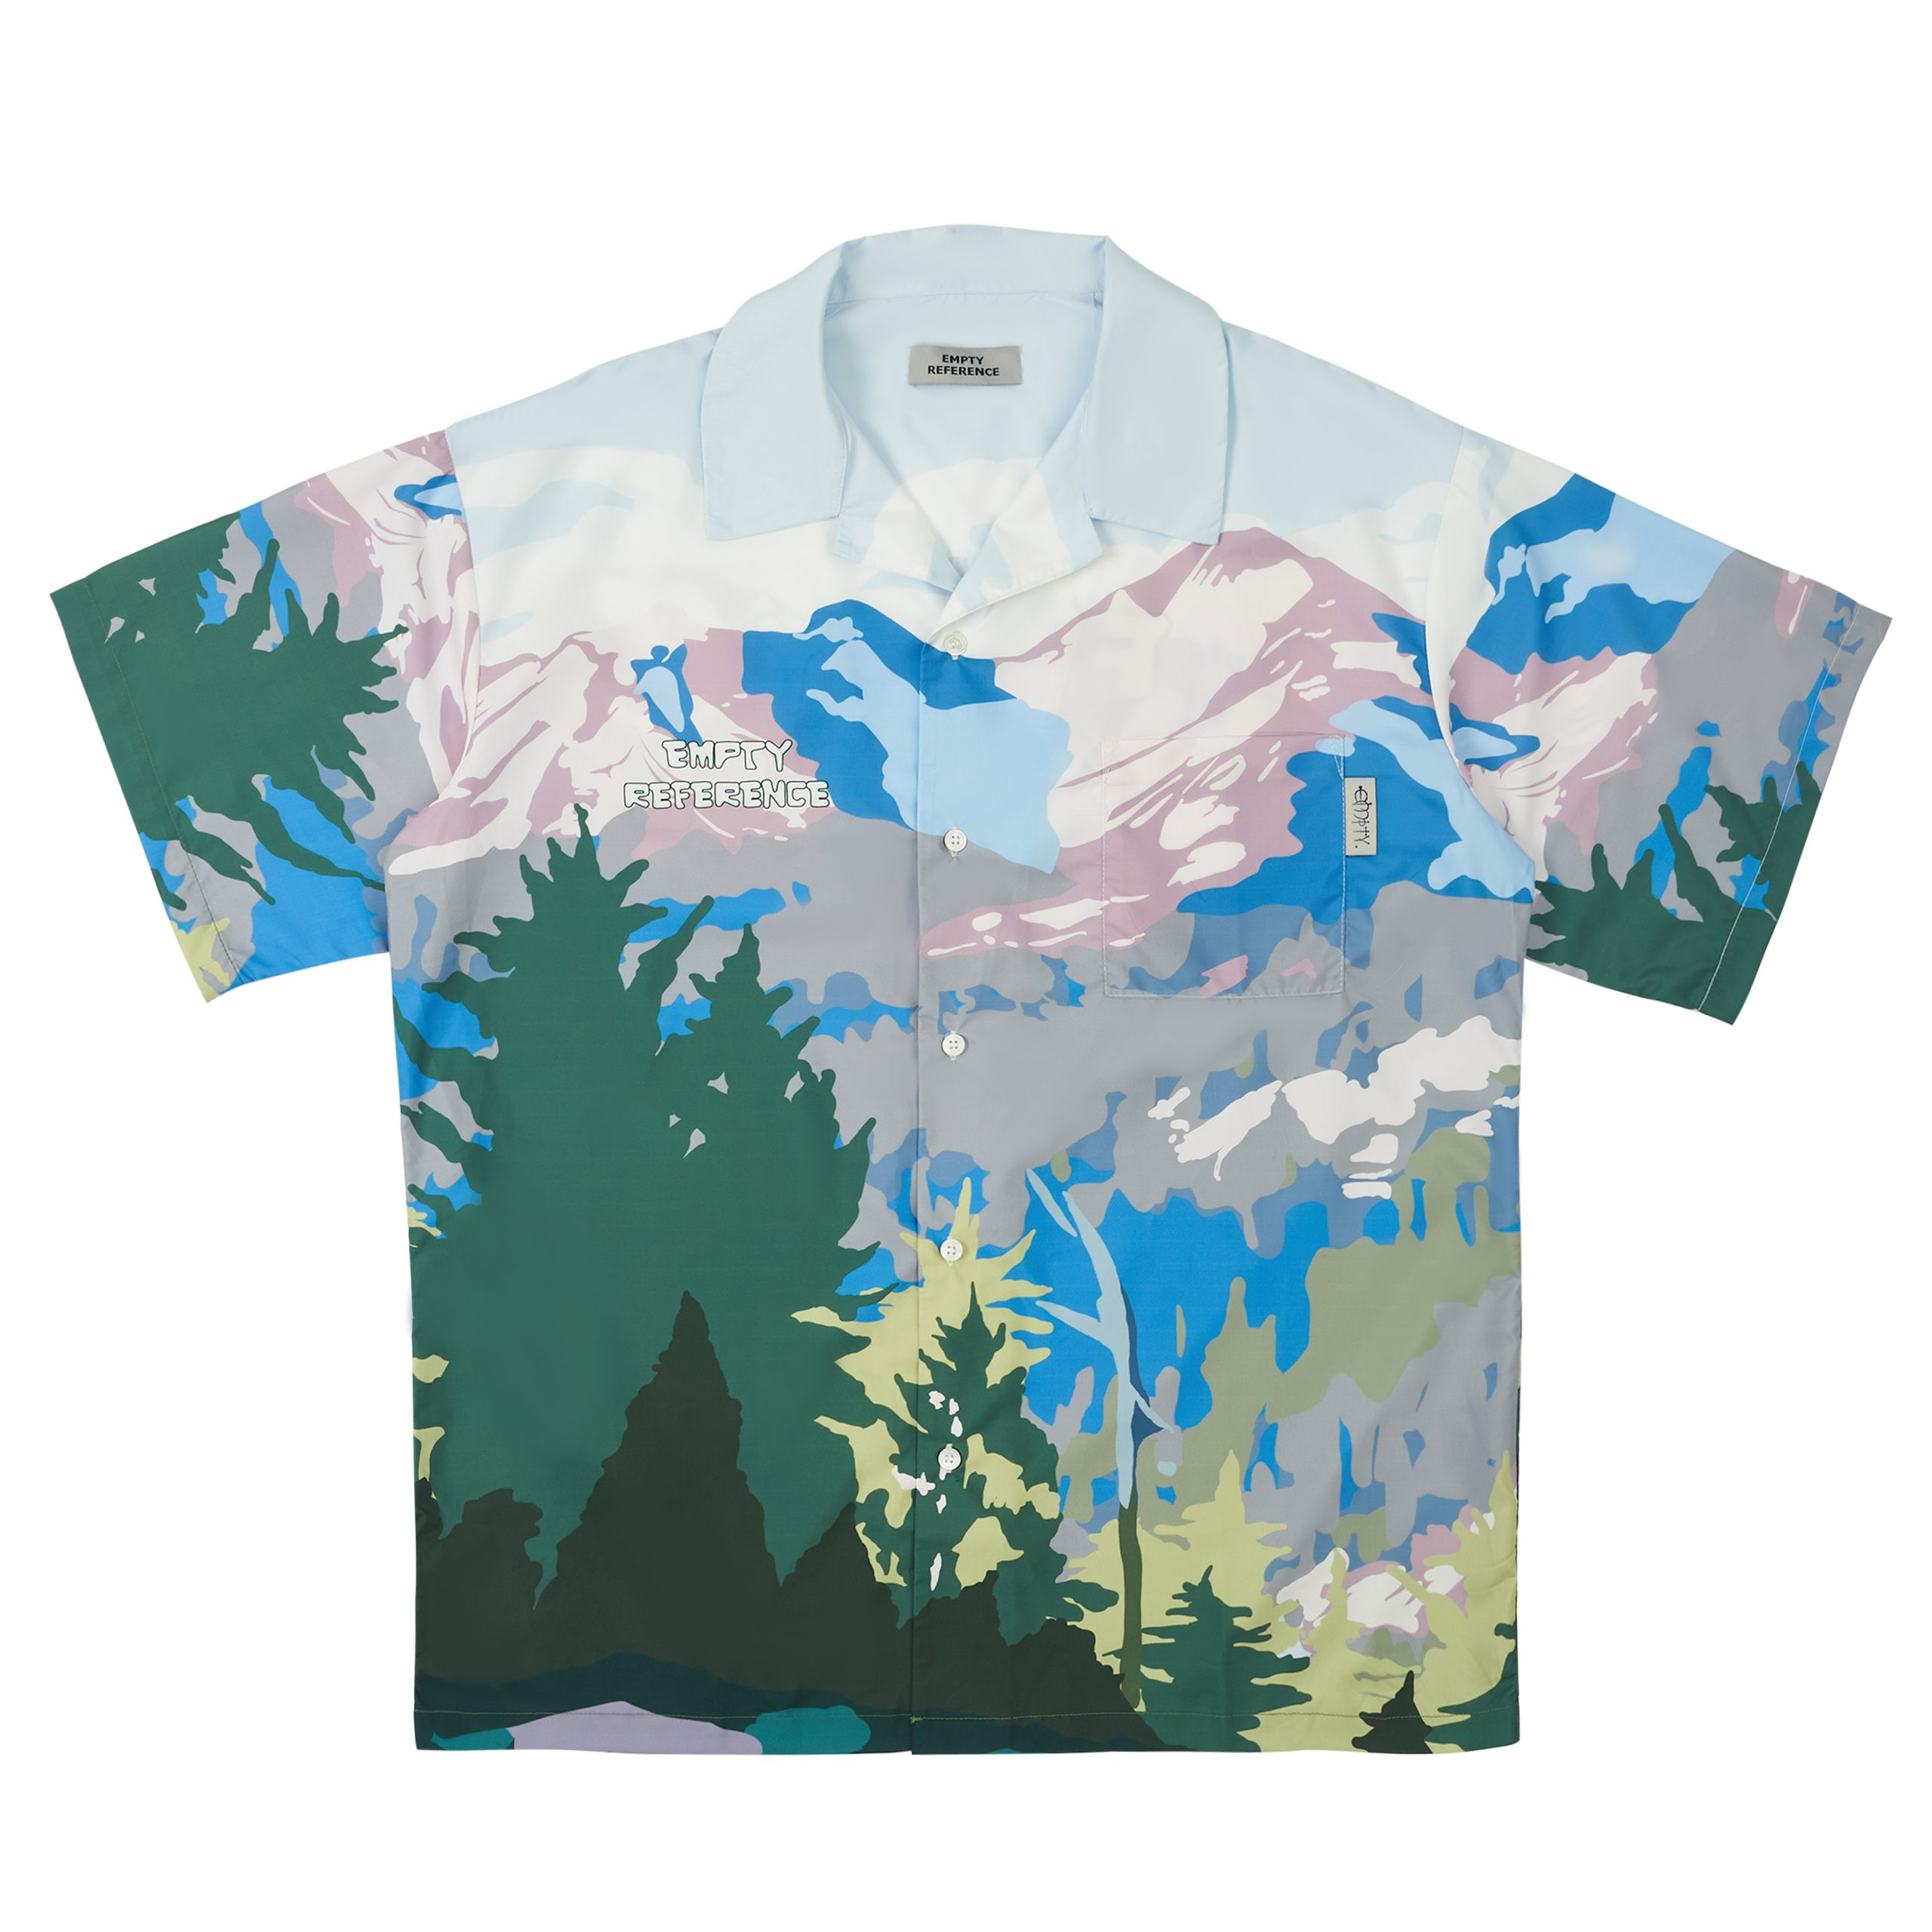 Empty Reference Alpine Graphic Bold Cuban Shirt - Streetwear - Mens - Unisex - Surf Skate